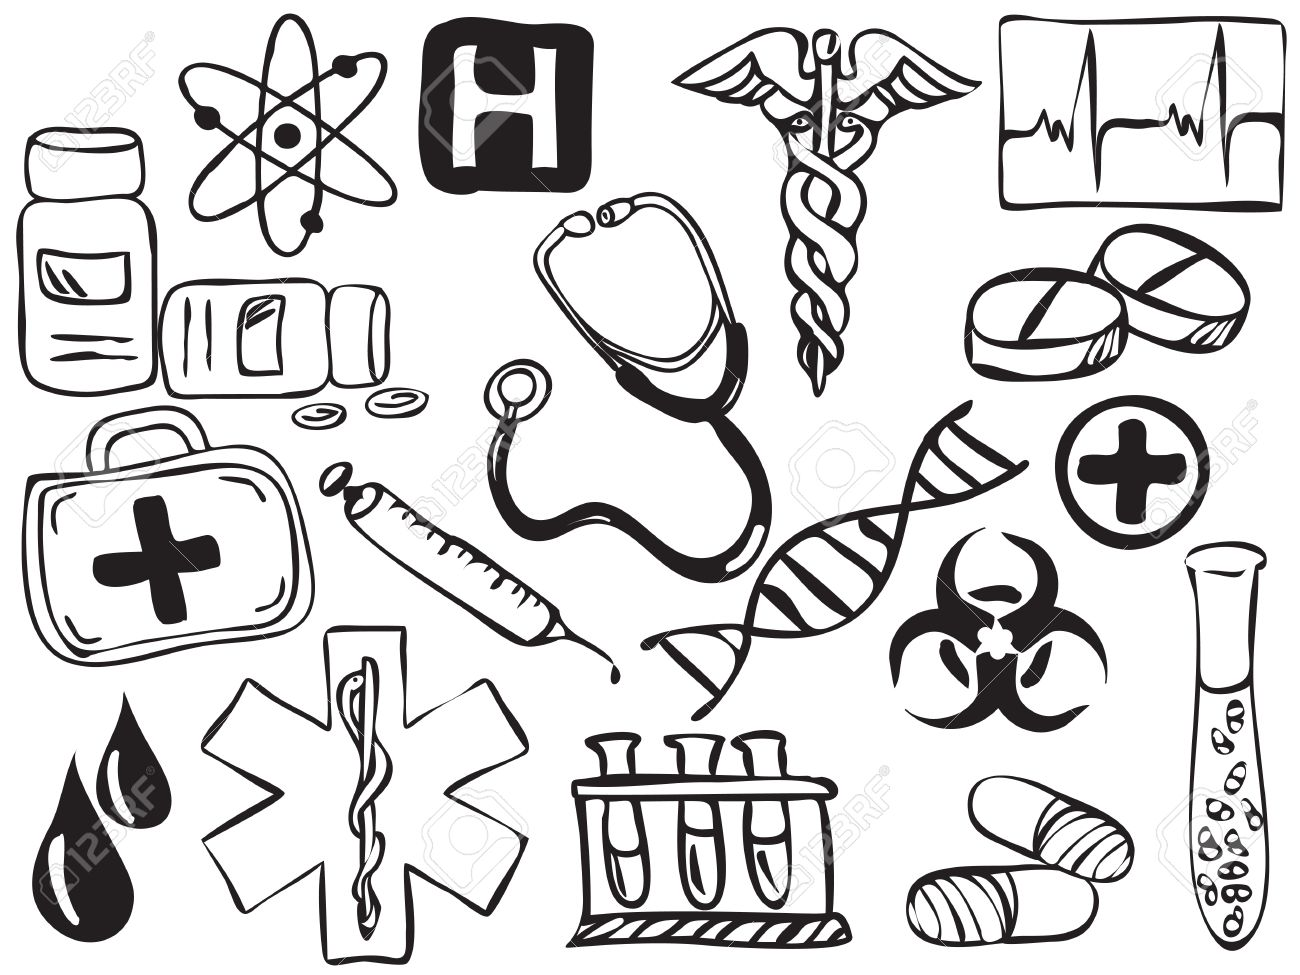 Medical and pharmacy icons drawing - illustration Stock Vector - 11996803